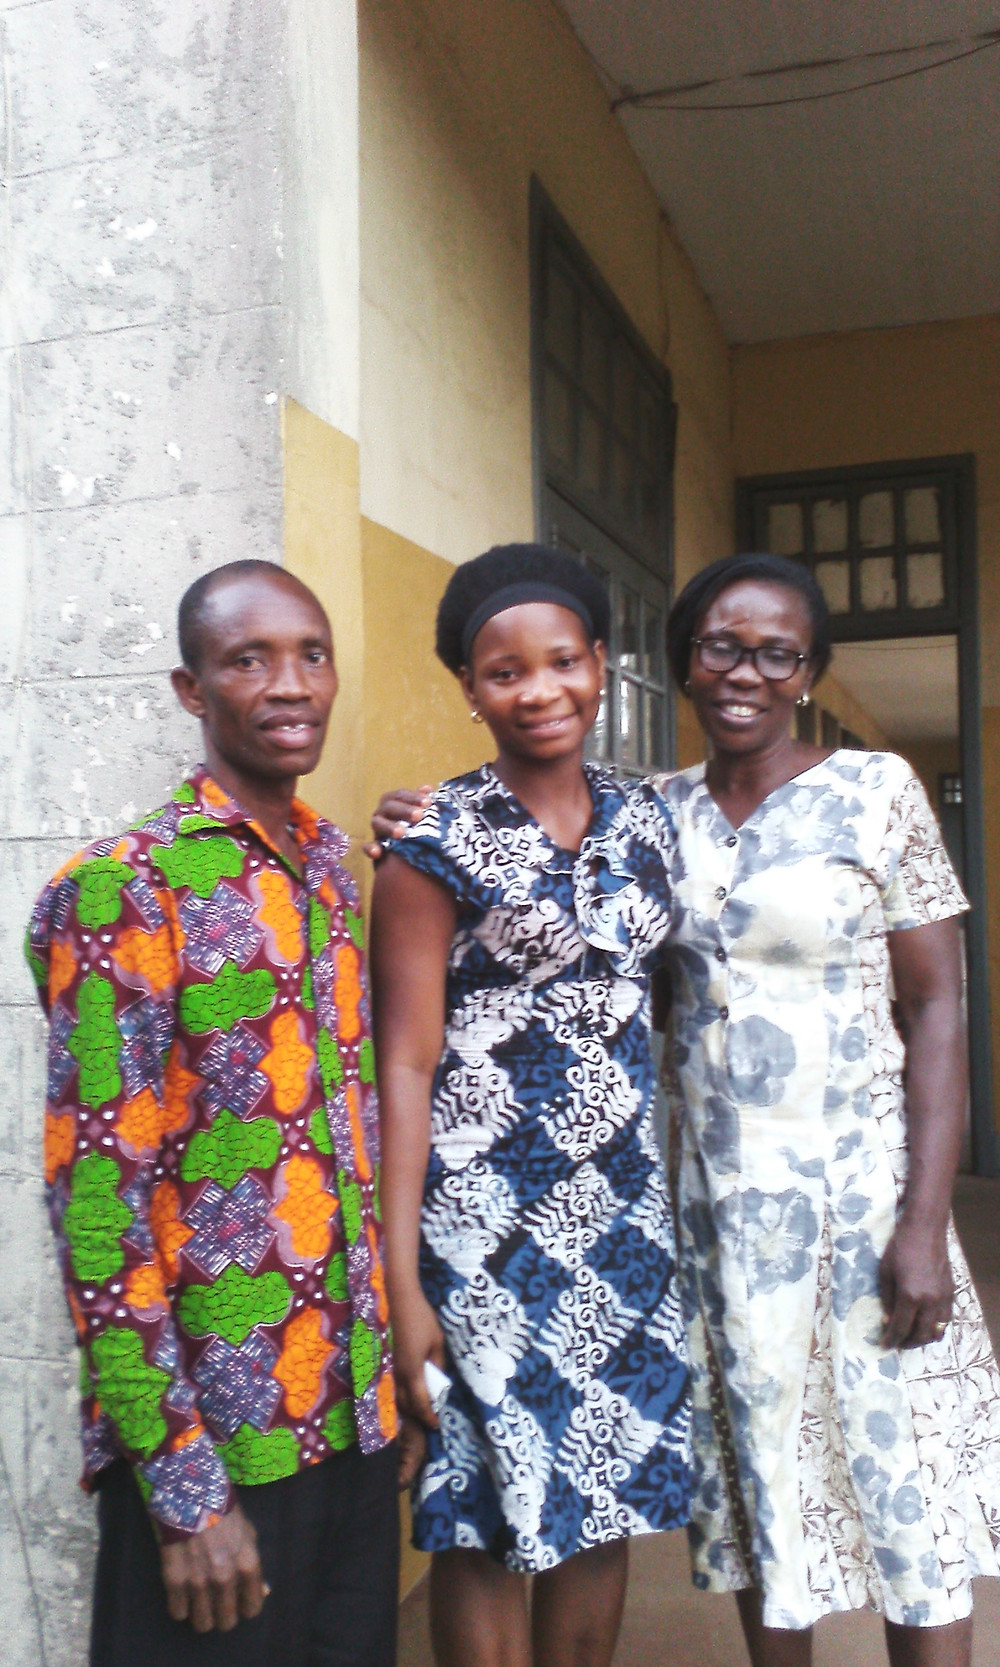 Emmanuel, Victoria and Sister Rose standing on stairs to school dressed in Ghanaian clothing. The Deaf Dream sponsors scholarships for Deaf college students in developing nations. Carol MacNicholl, Destiny Yarbro, Sanne Winsser board of directors.